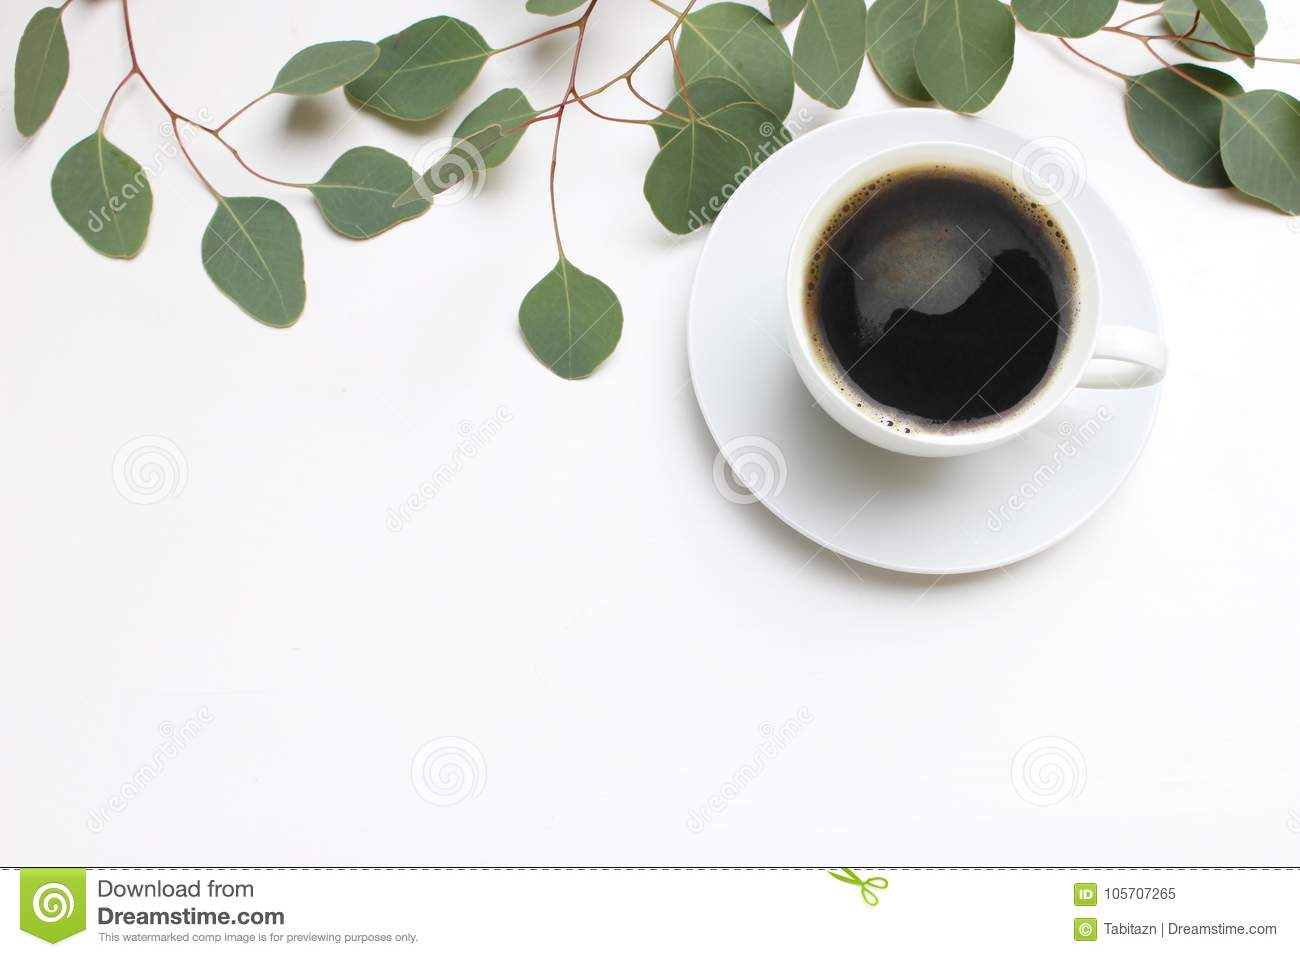 Floral composition made of green eucalyptus leaves and branches on white wooden background with cup of coffee. Feminine